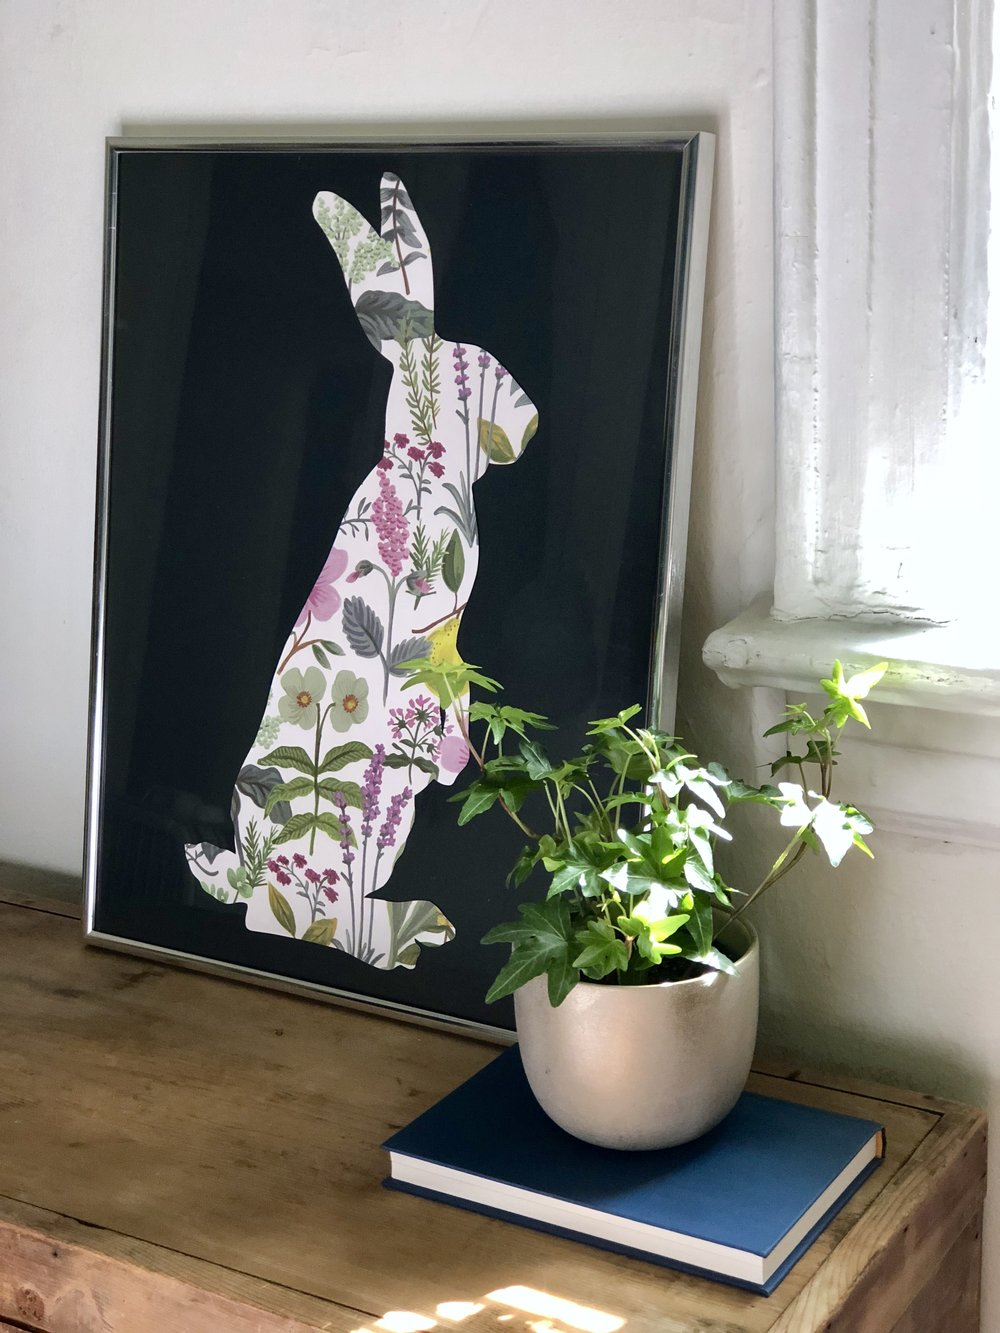 Easy Spring DIY's EASTER FLORAL BUNNY ART MATERIALS: Printed google bunny silhouette, Floral paper, Double sided tape, Black poster board